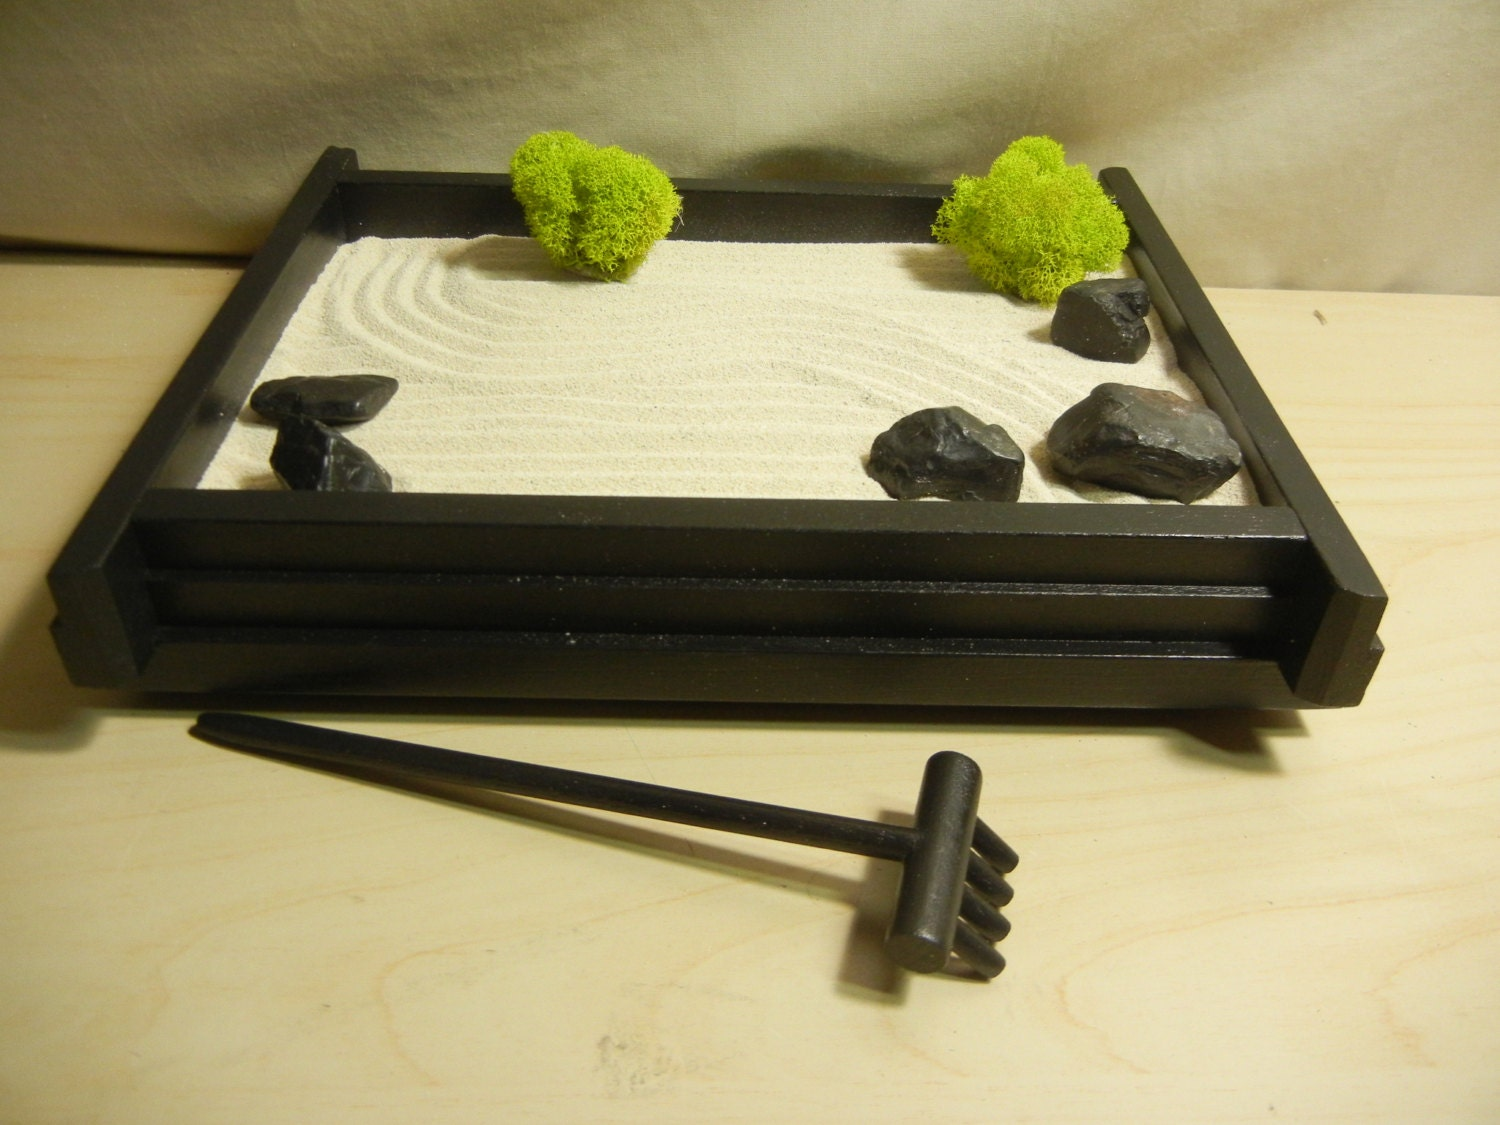 S01 small desk or table top zen garden diy kit for Table zen garden